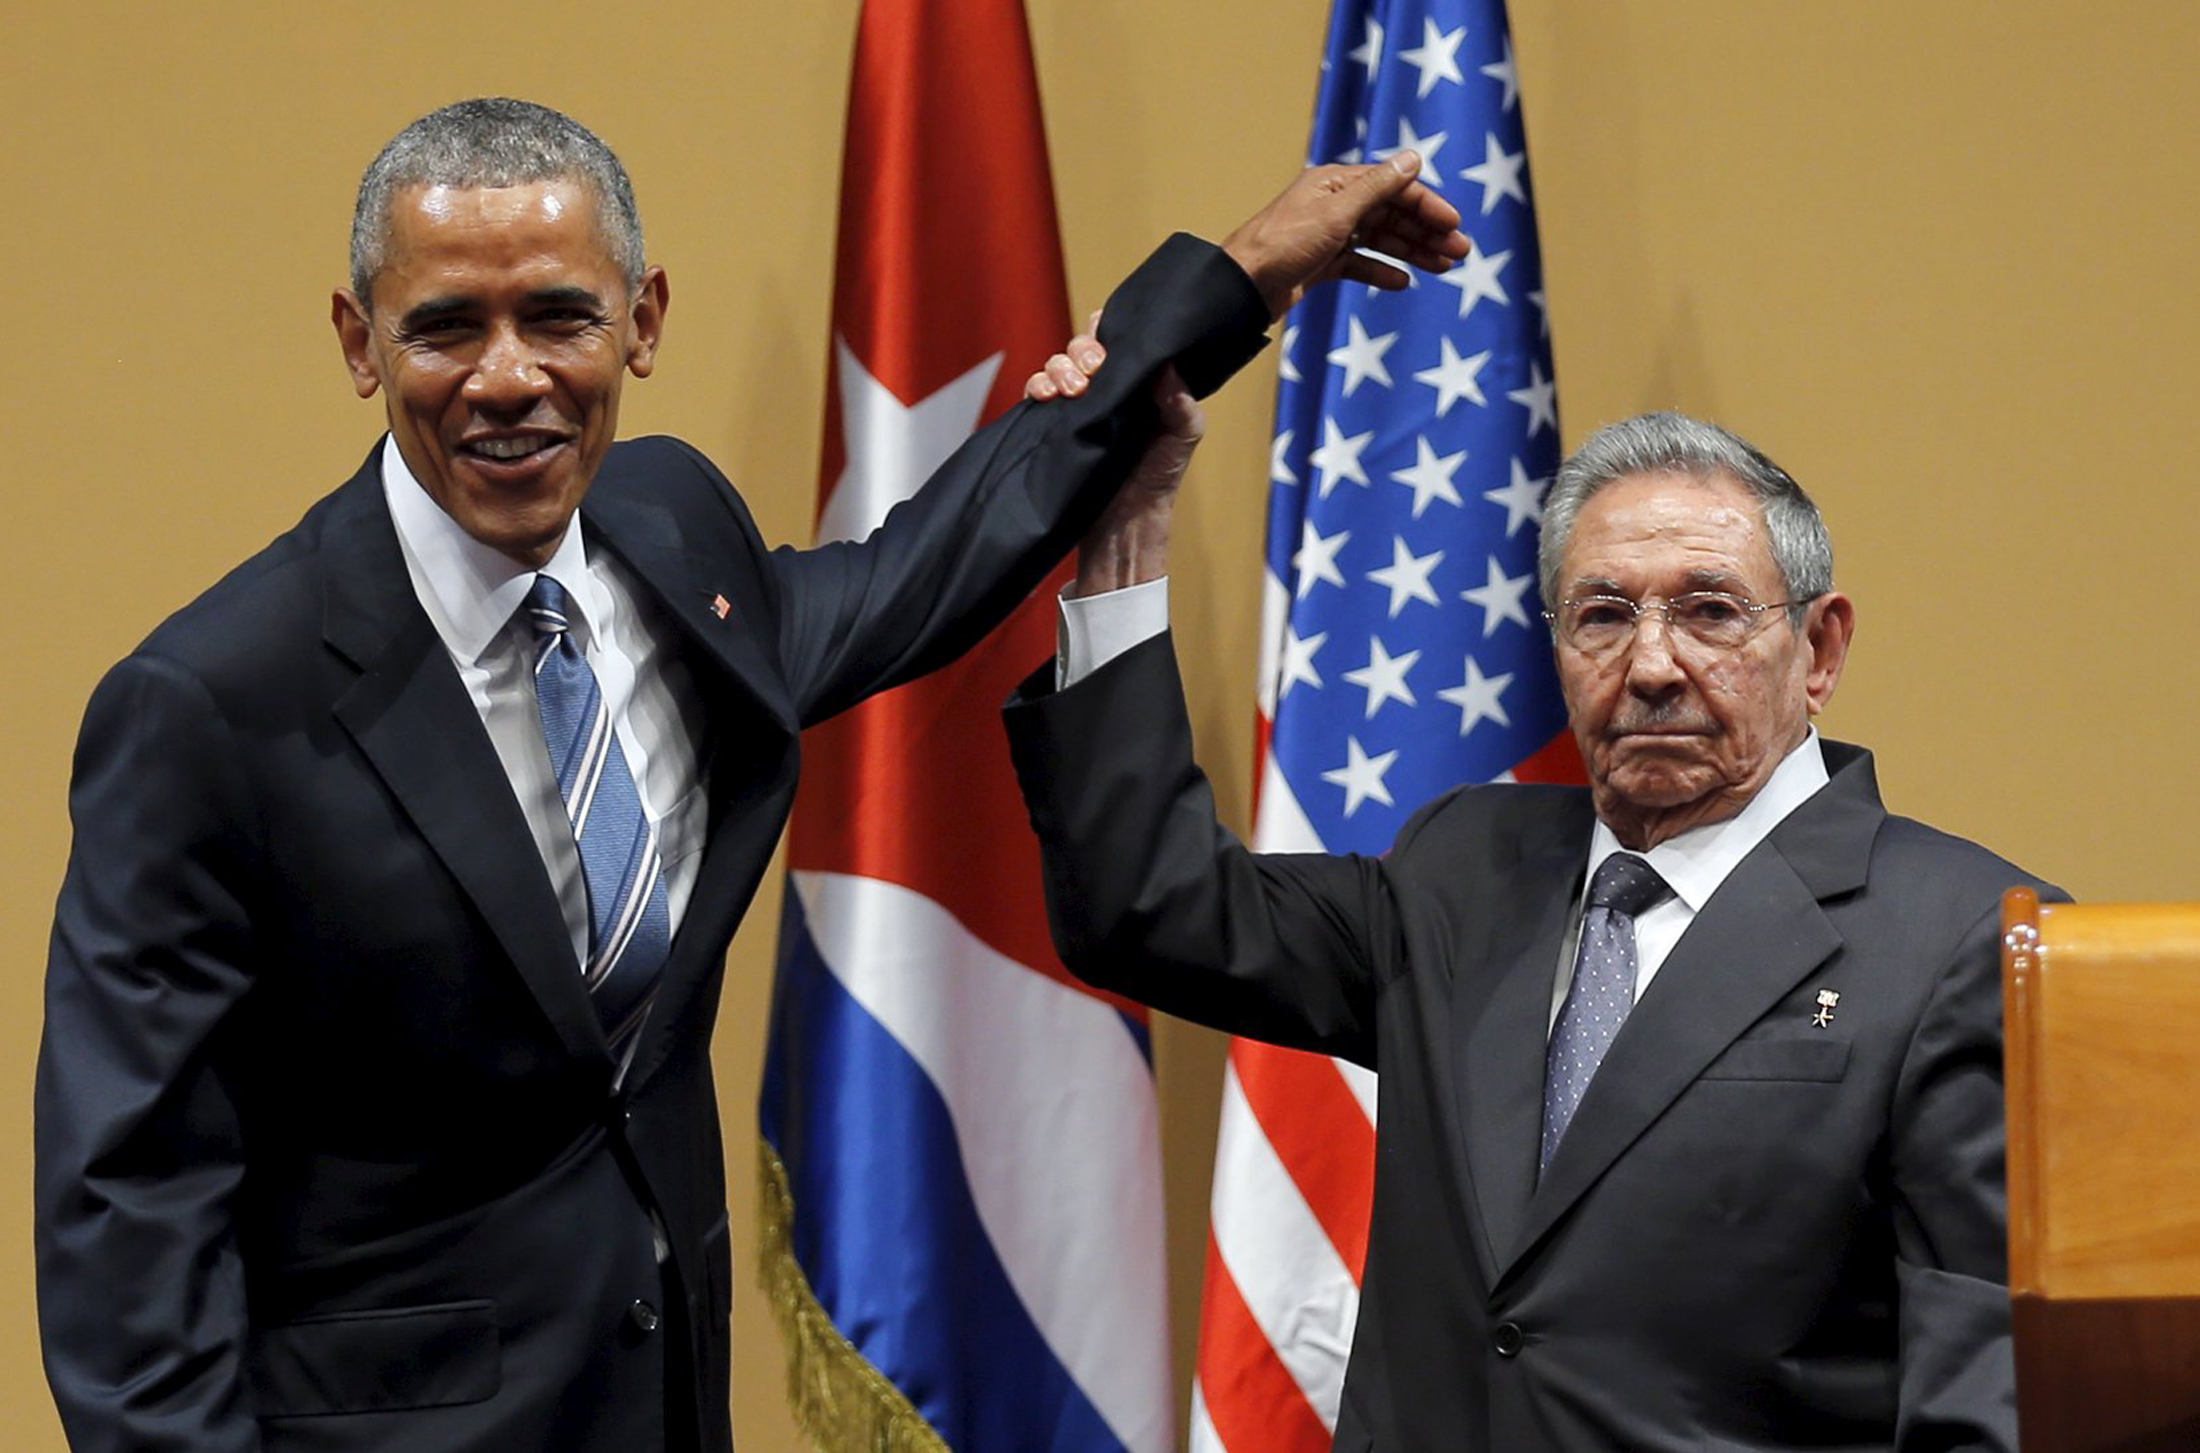 US President Barack Obama and Cuban President Raúl Castro gesture after a news conference as part of President Obama's three-day visit to Cuba. In Havana March 21, 2016.